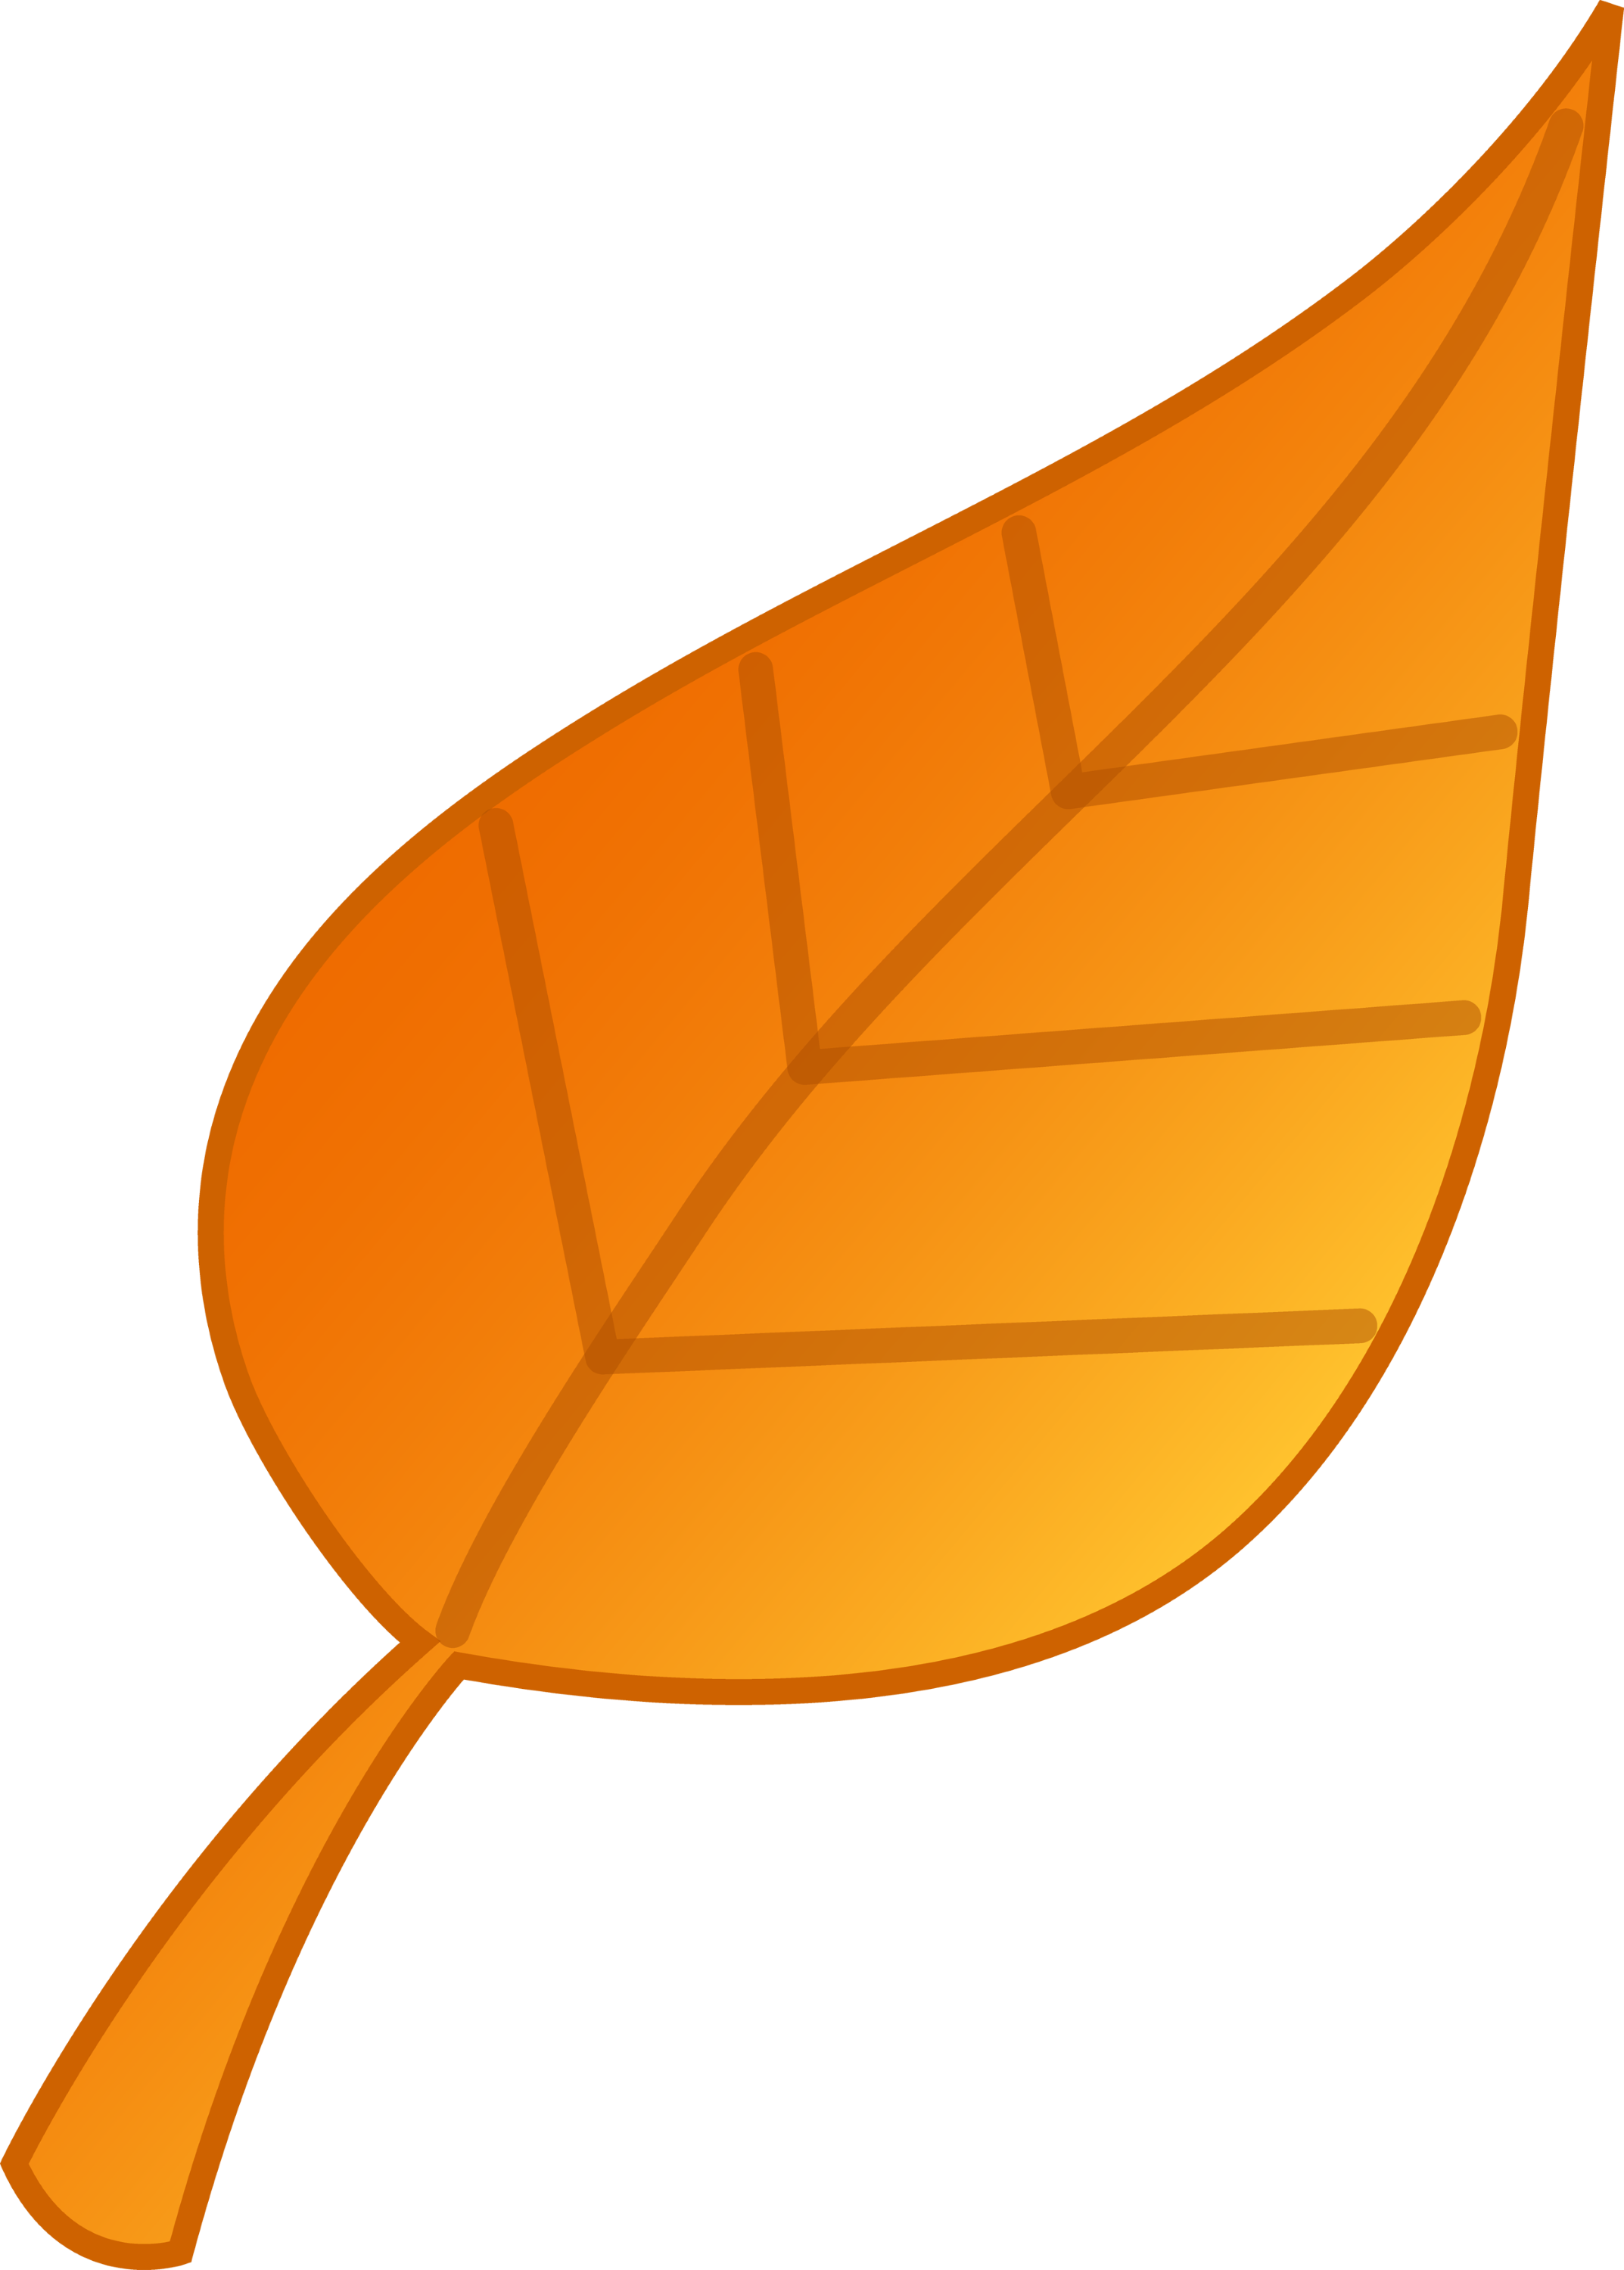 clipart leaves - photo #48